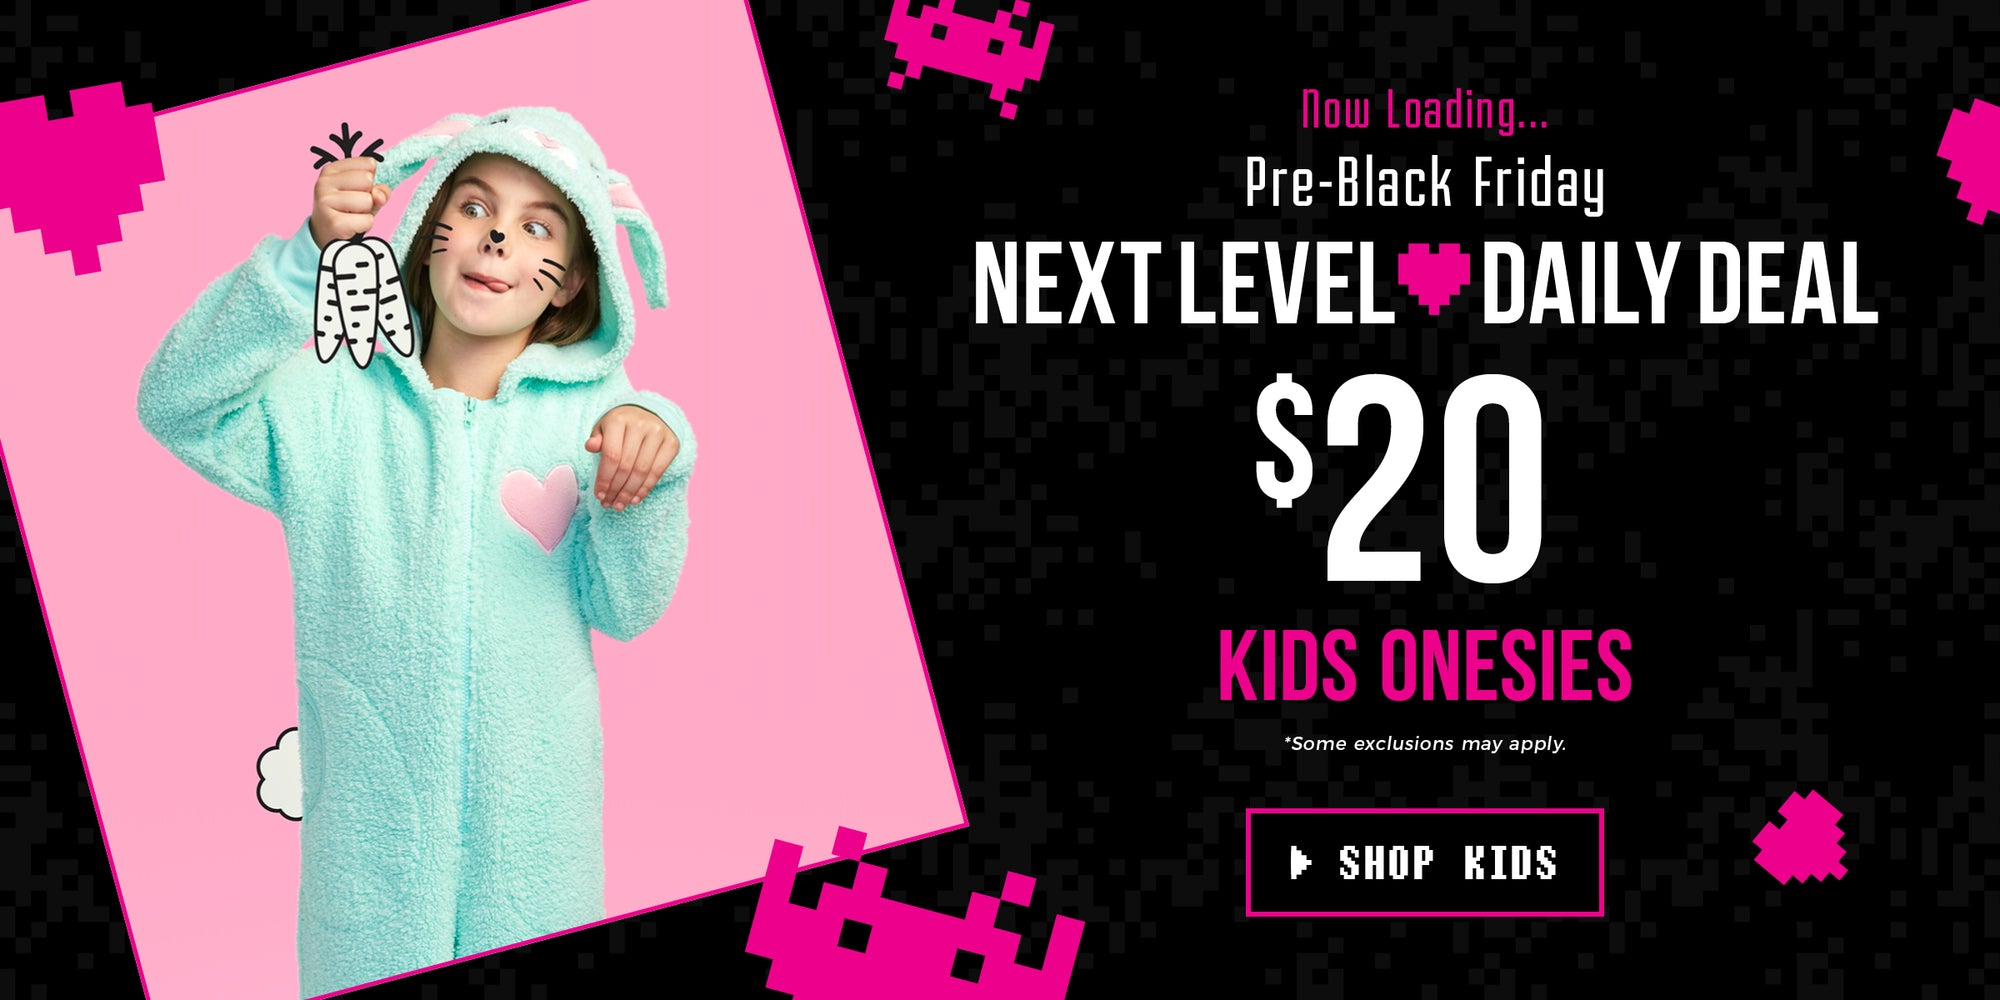 Deal of the Day - $20 Kids Onesies